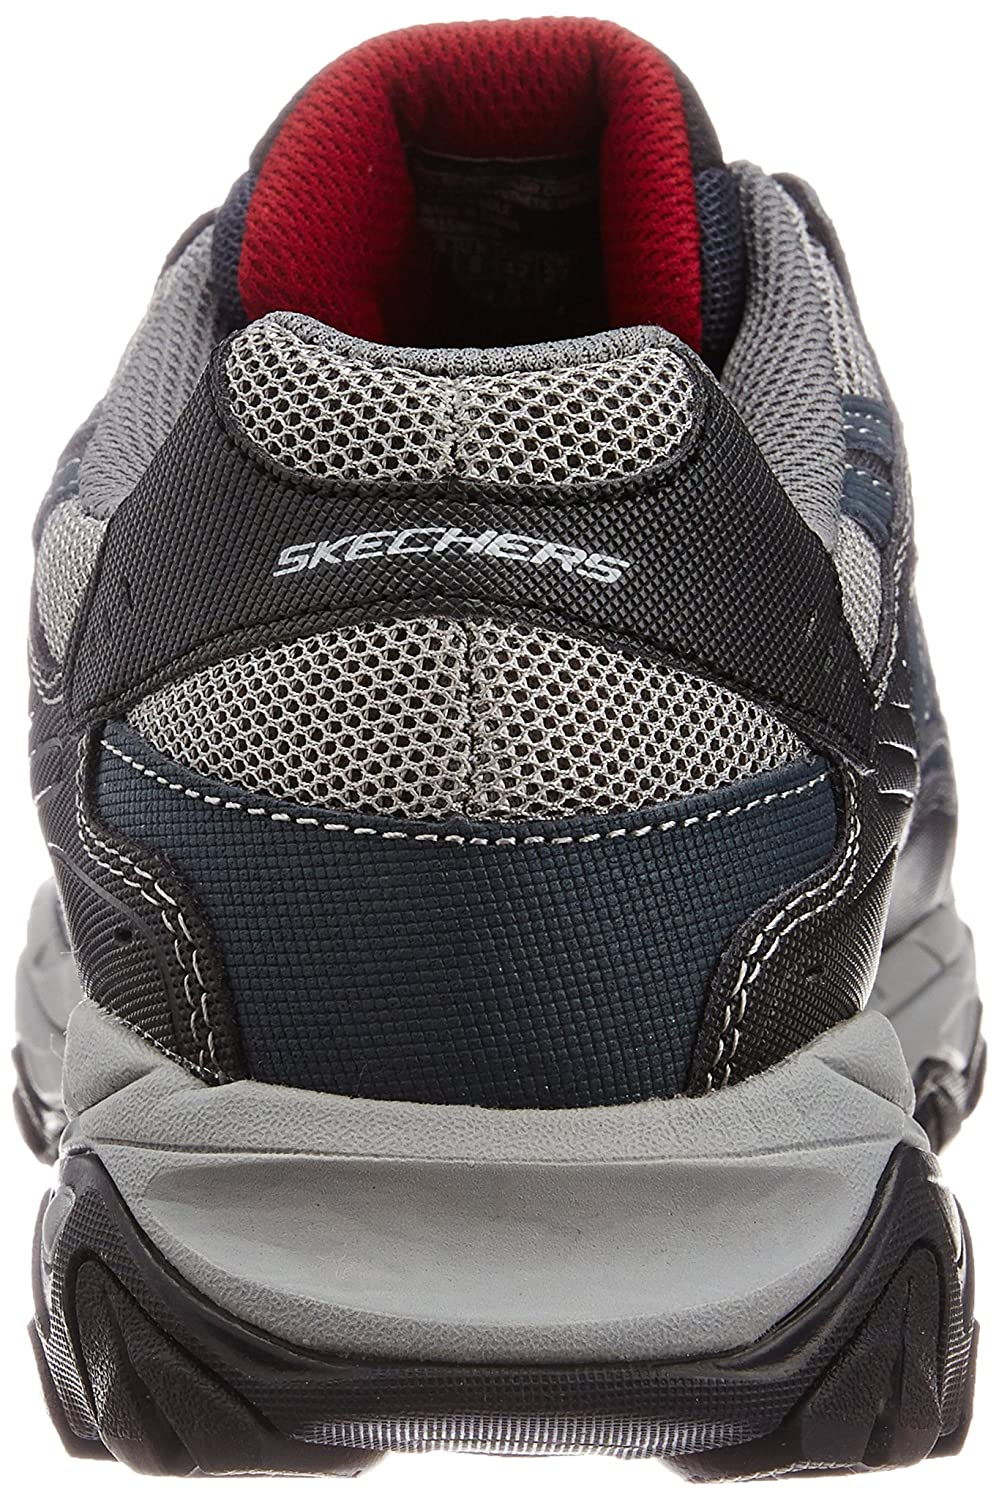 Skechers-Afterburn-Memory-Foam-M-Fit-Men-039-s-Sport-After-Burn-Sneakers-Shoes thumbnail 59